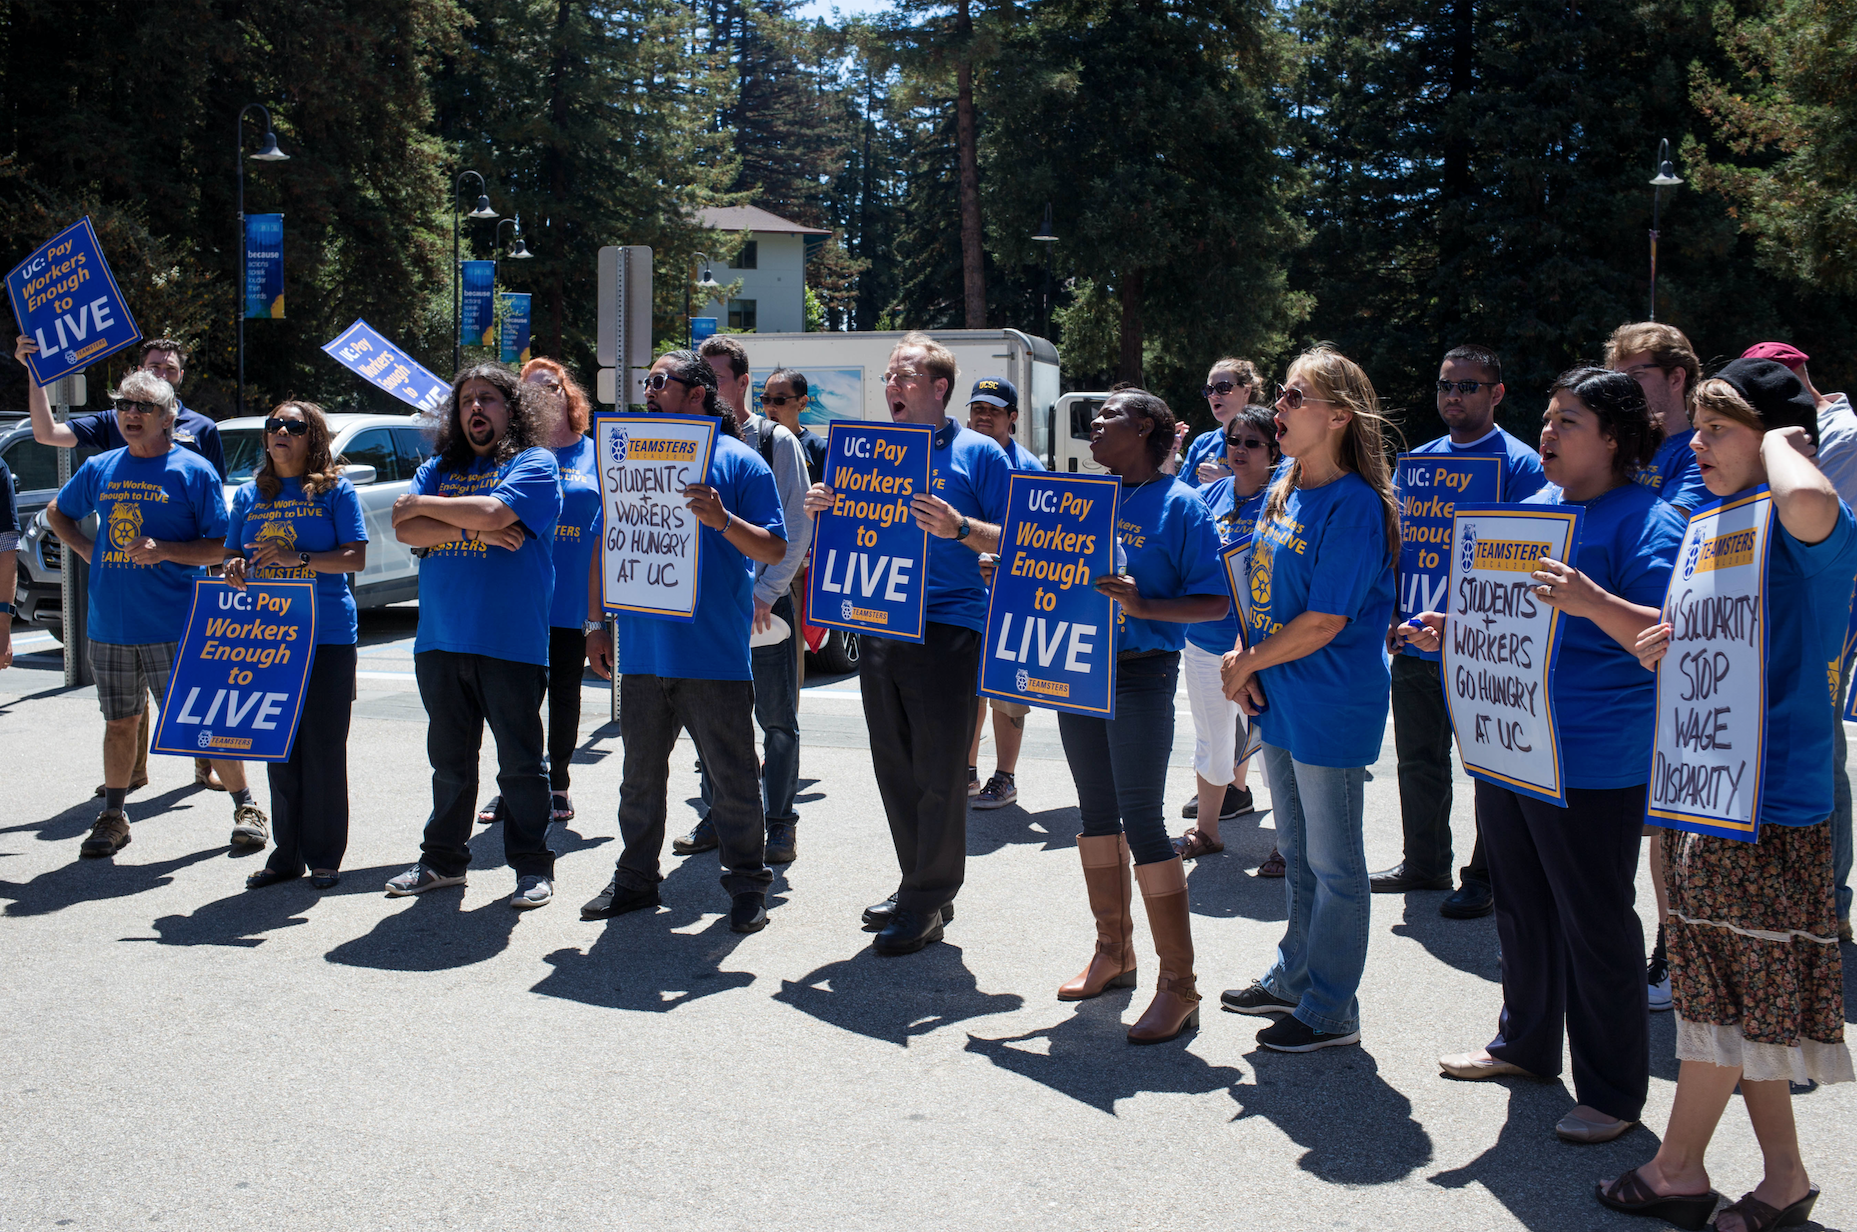 UC Laborers Union Protest Pay Wage